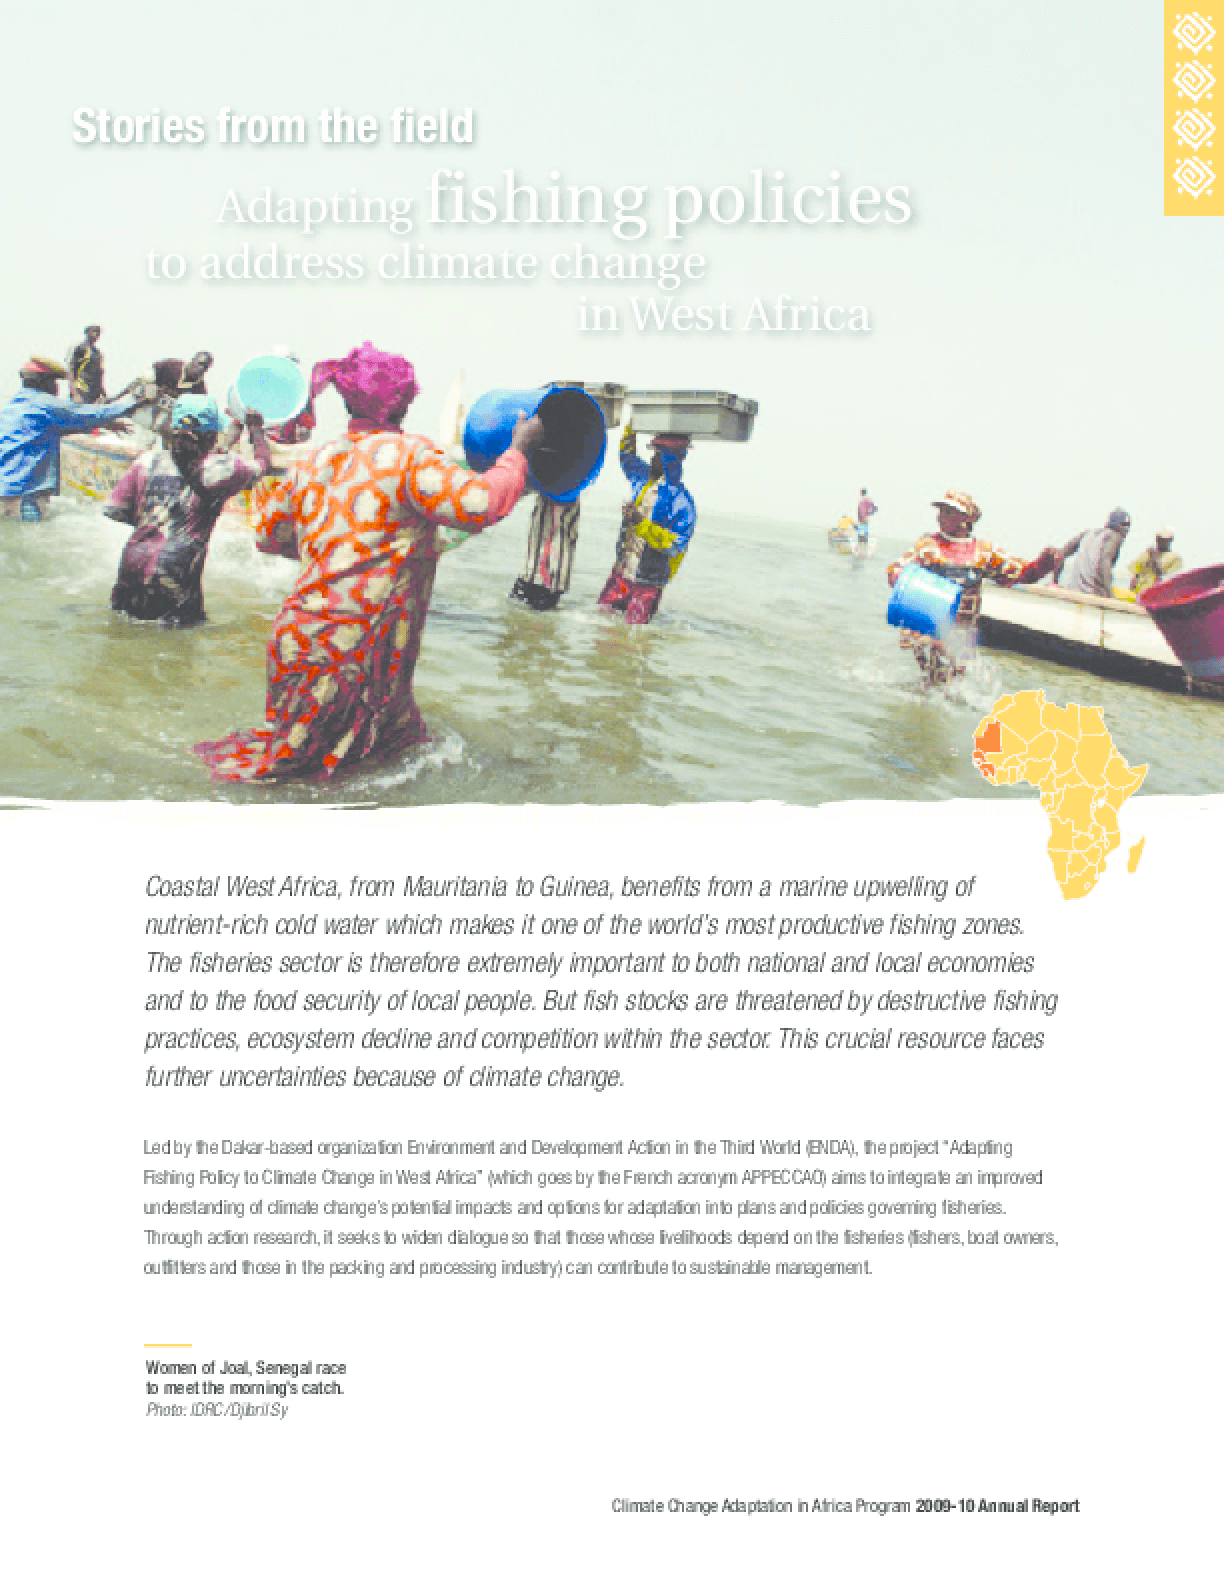 Stories from the Field: Adapting Fishing Policies to Address Climate Change in West Africa